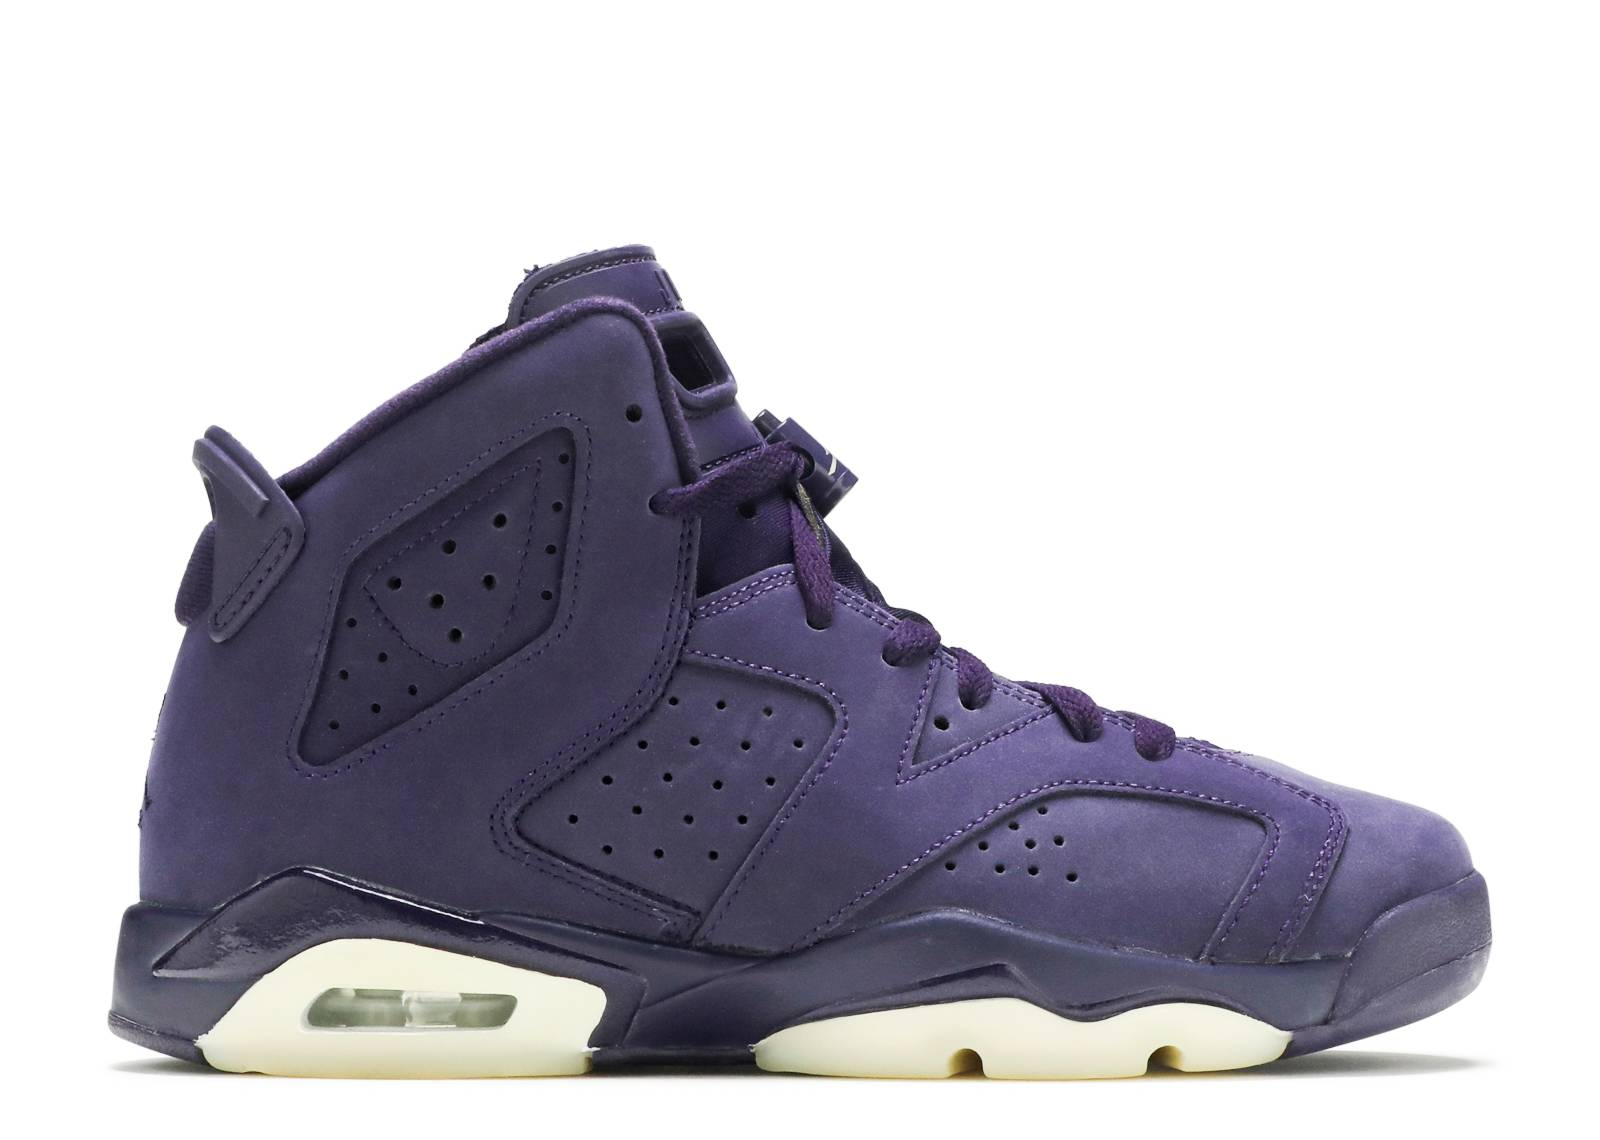 2acd8911da9888 Air Jordan 6 Retro Gg